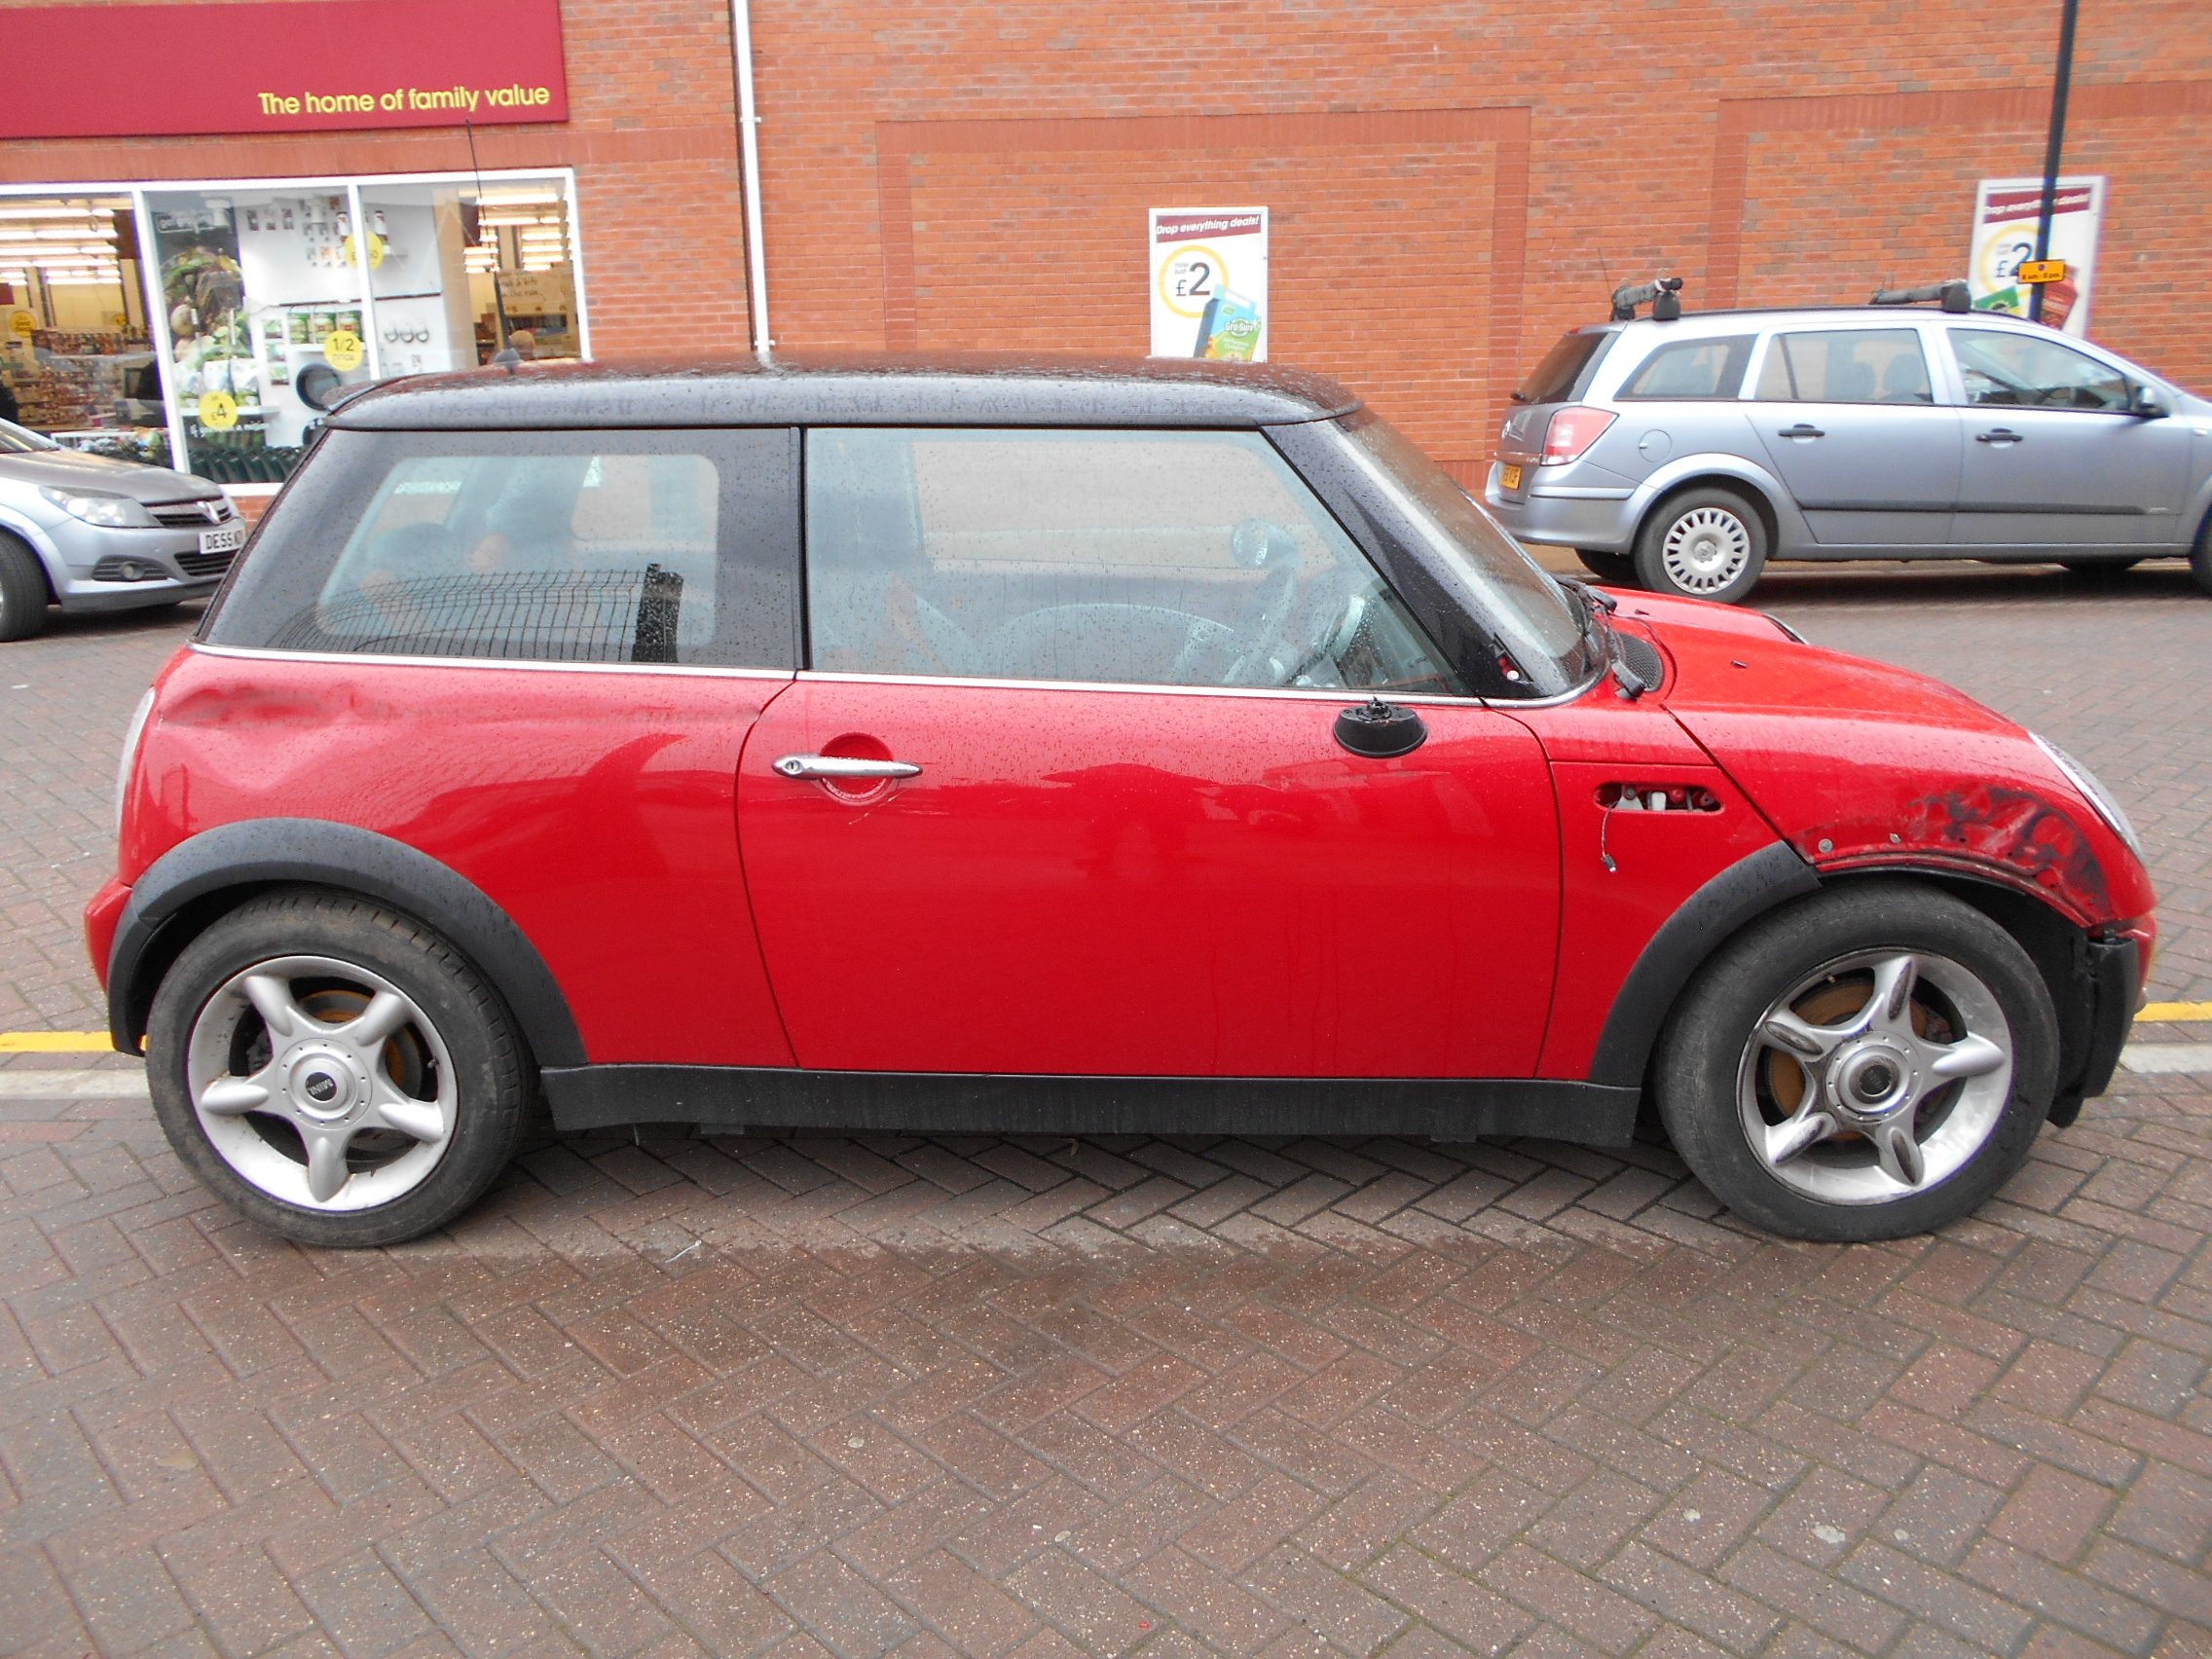 04 Black 1.6 BMW Mini Cooper - 1